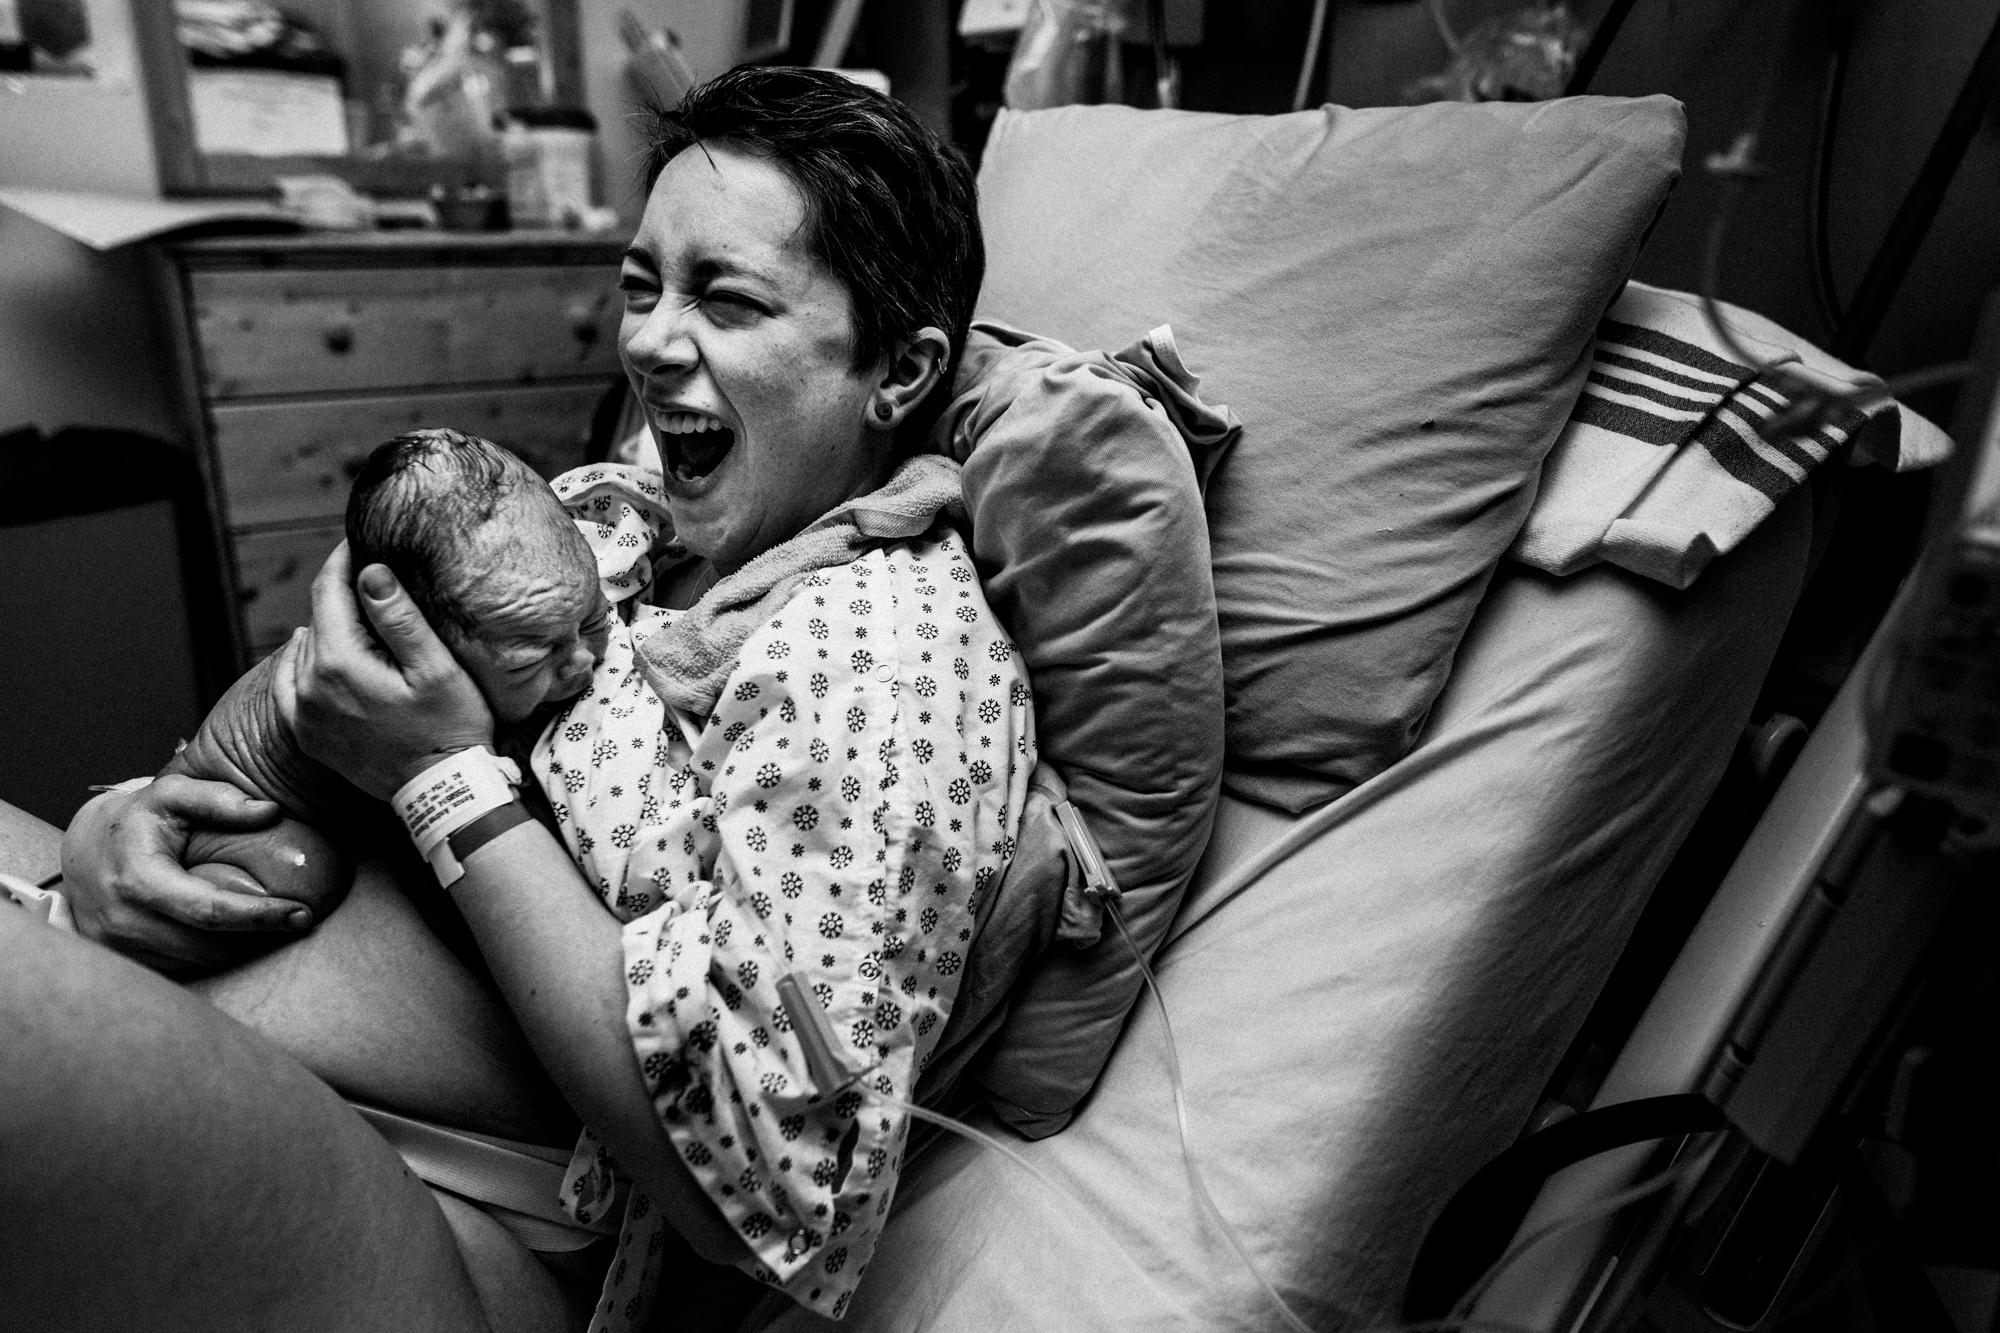 Ashley Marston Birth & Lifestyle\Documentary Photographer /  www.ashleymarstonbirthphotography.com